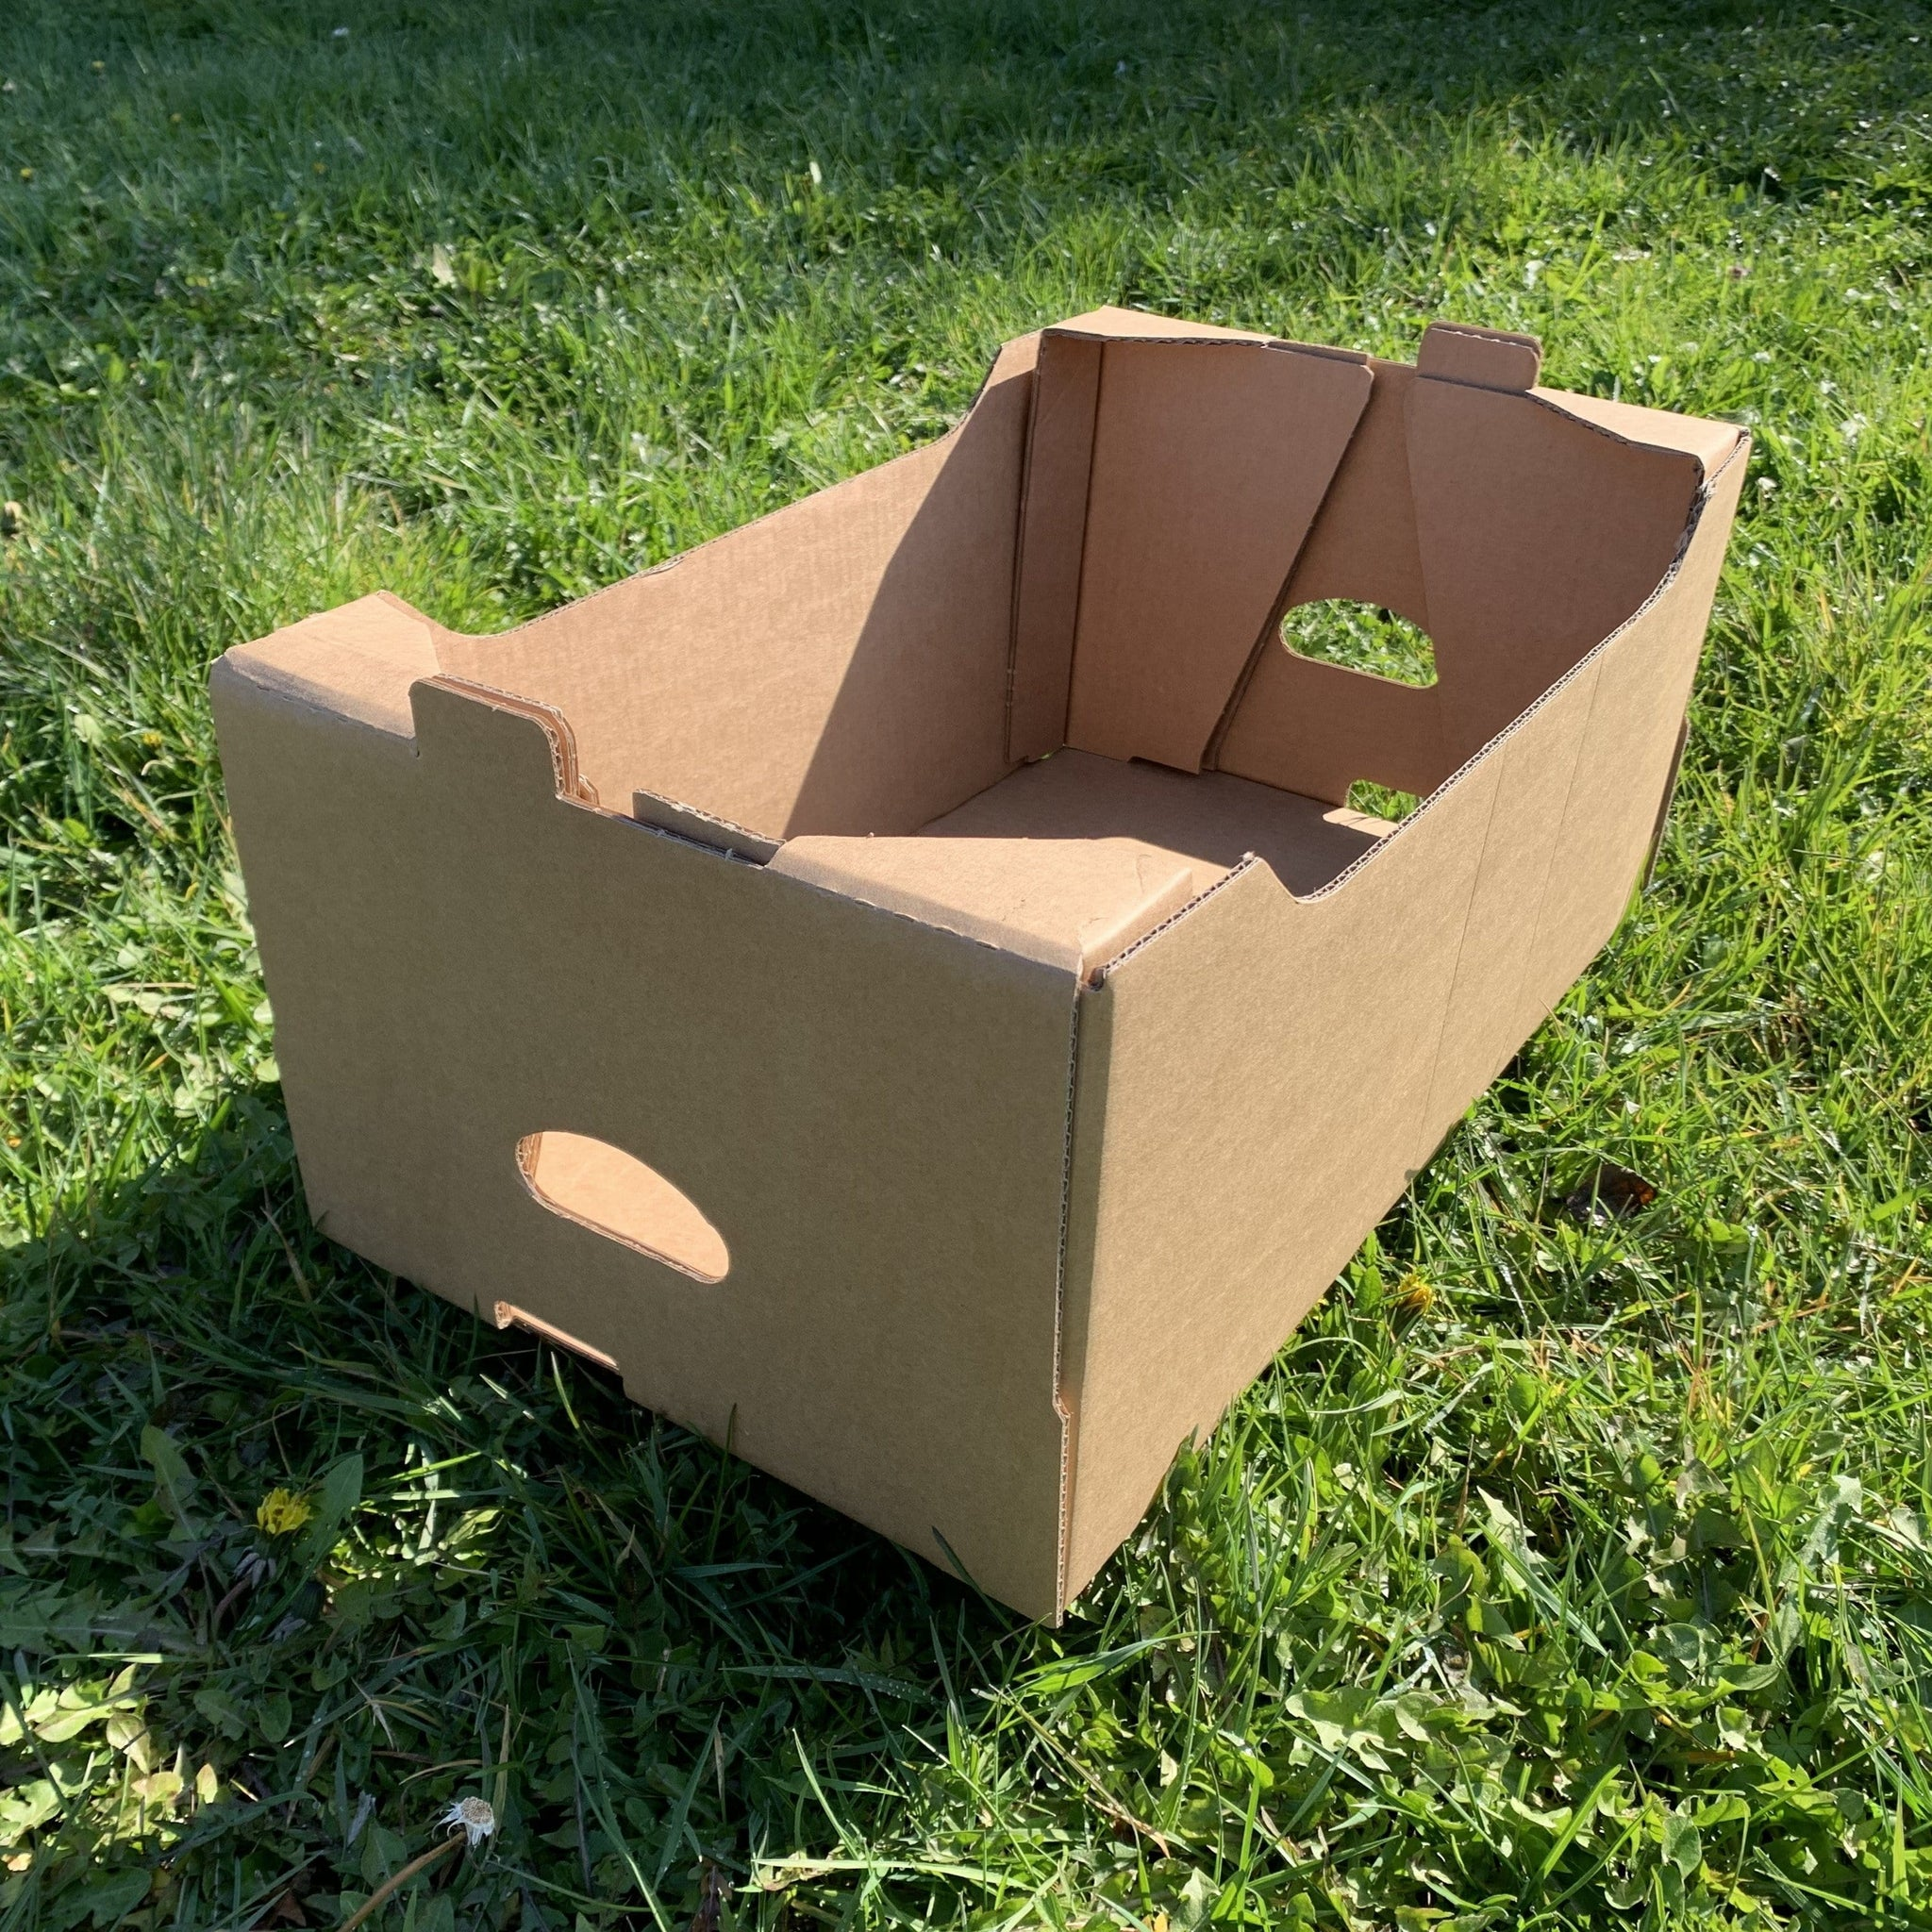 Home Delivery Boxes - Brown Cardboard - Recyclable & Compostable -Bulk Buy - NaturePac